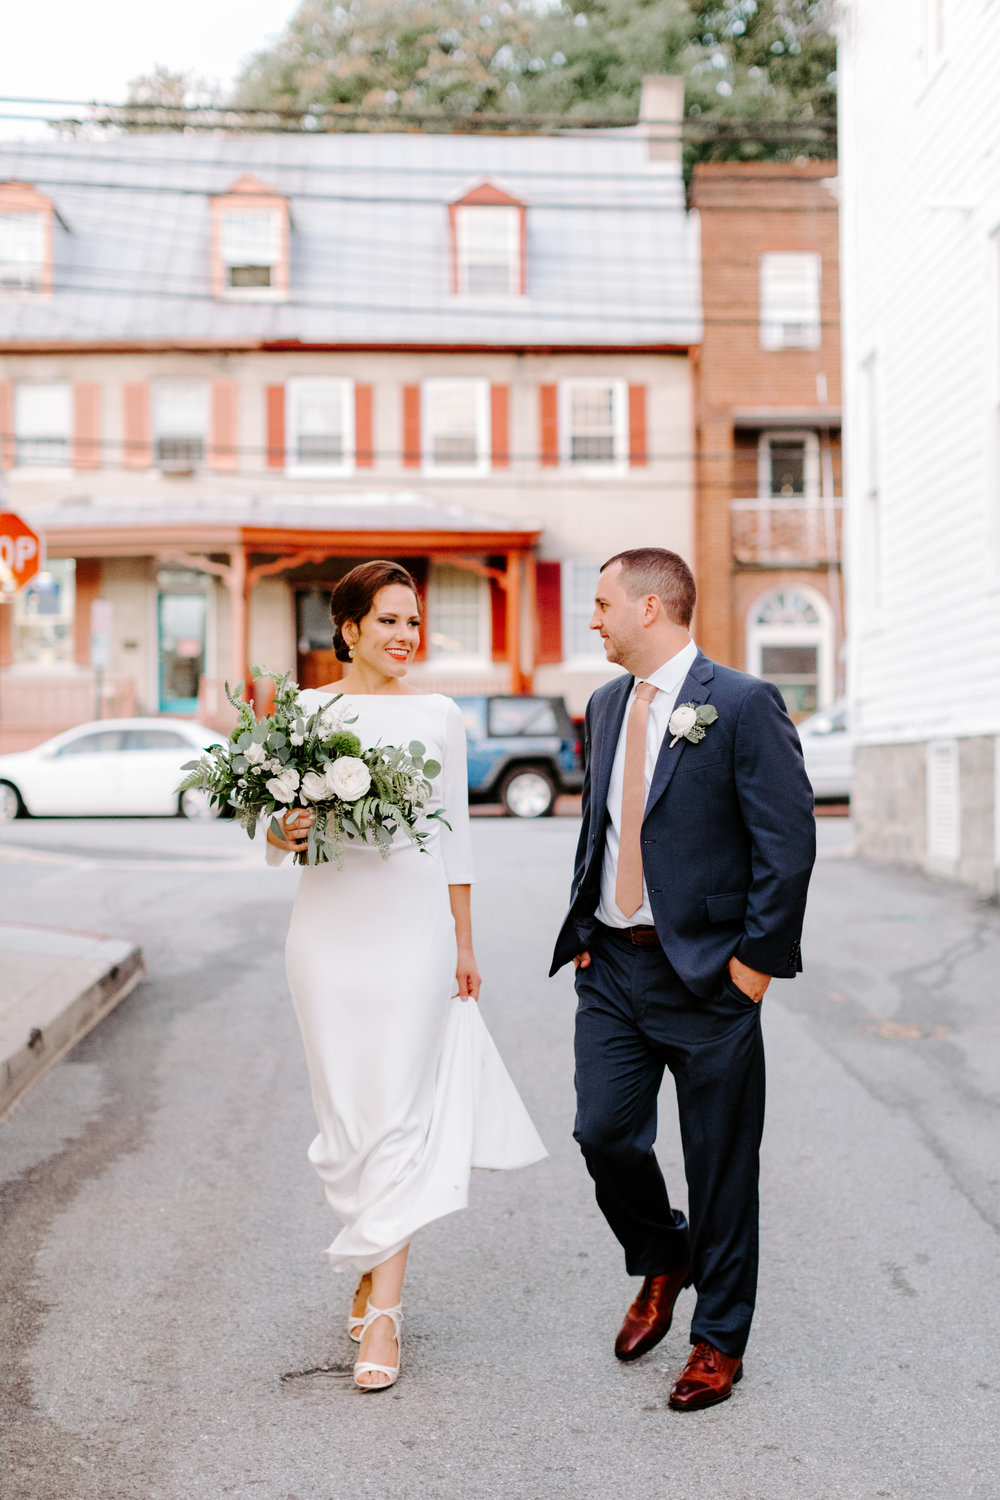 09.28.18 Marie +Jeff Alicia WIley Photography MD LC AC404.jpg